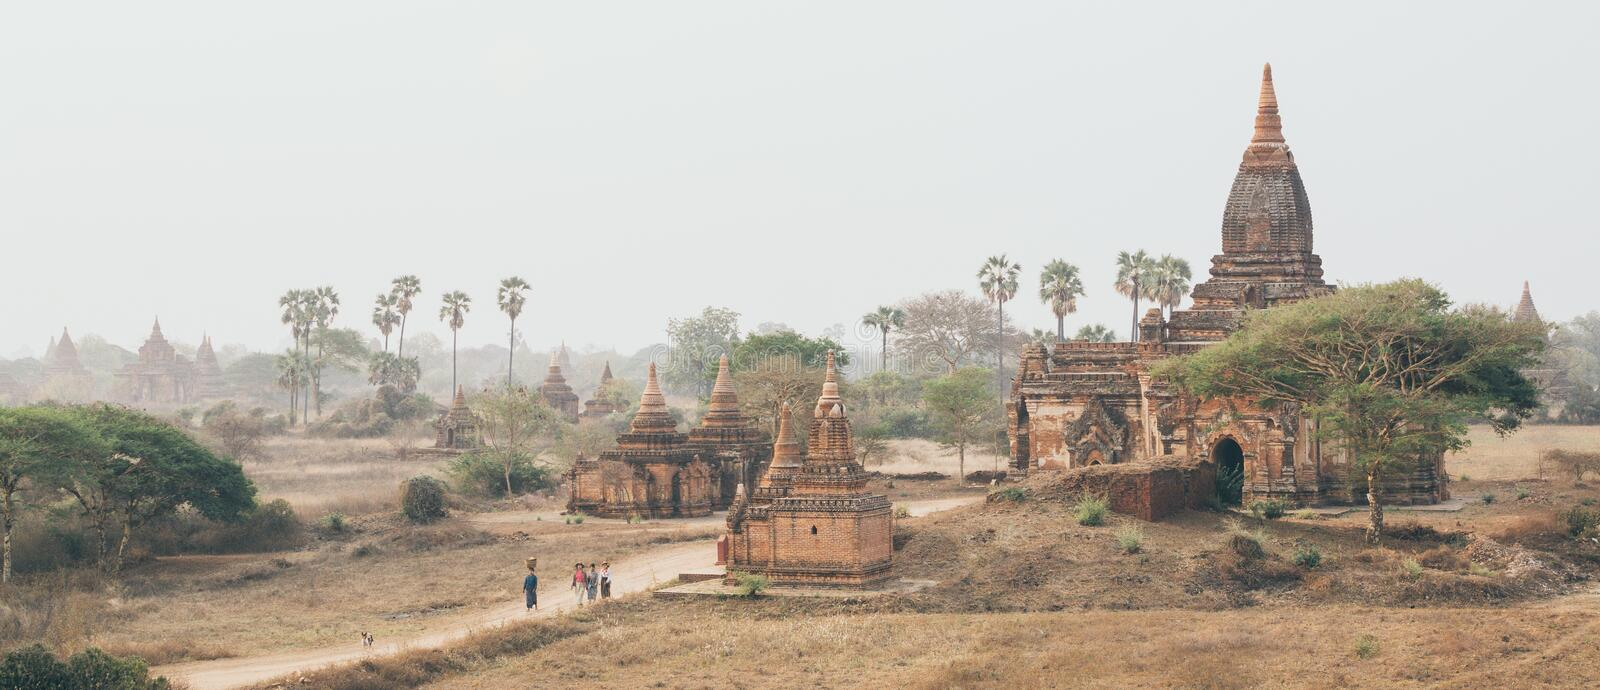 Bagan, Myanmar - March 2019: people walking through ancient temples and pagodas at sunset.  stock images